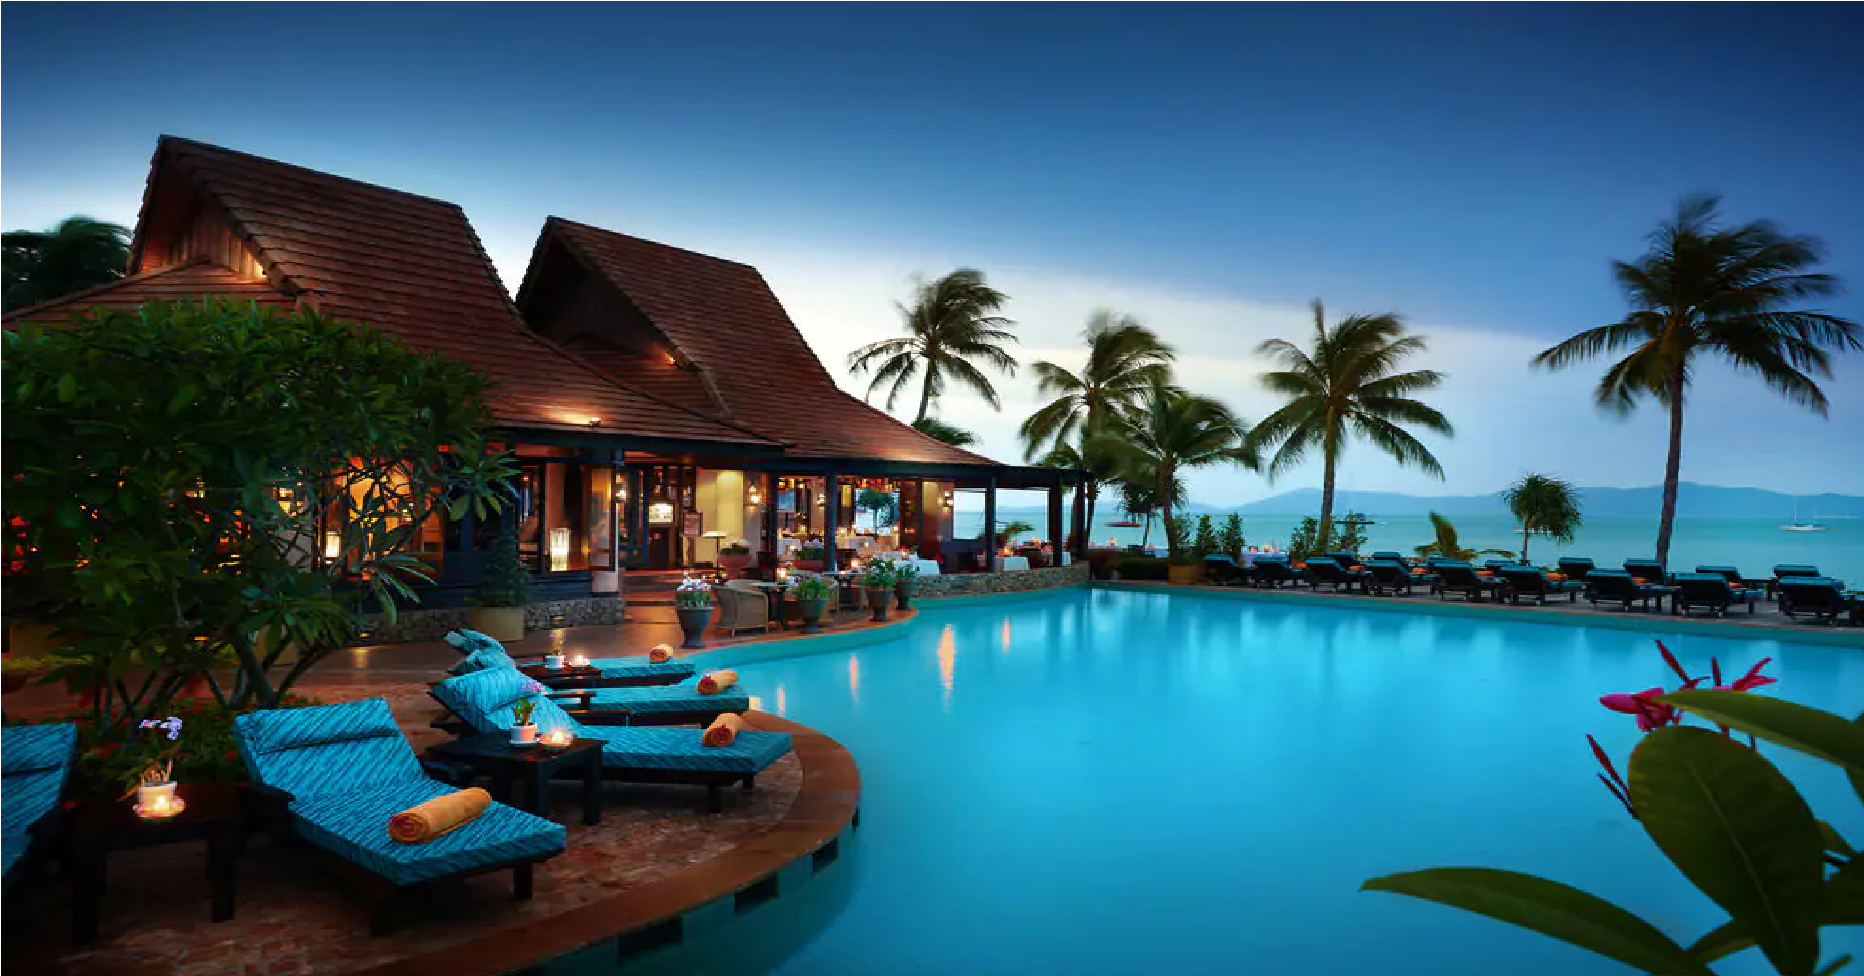 THE 5 BEST BUDGET HOTELS IN THAILAND